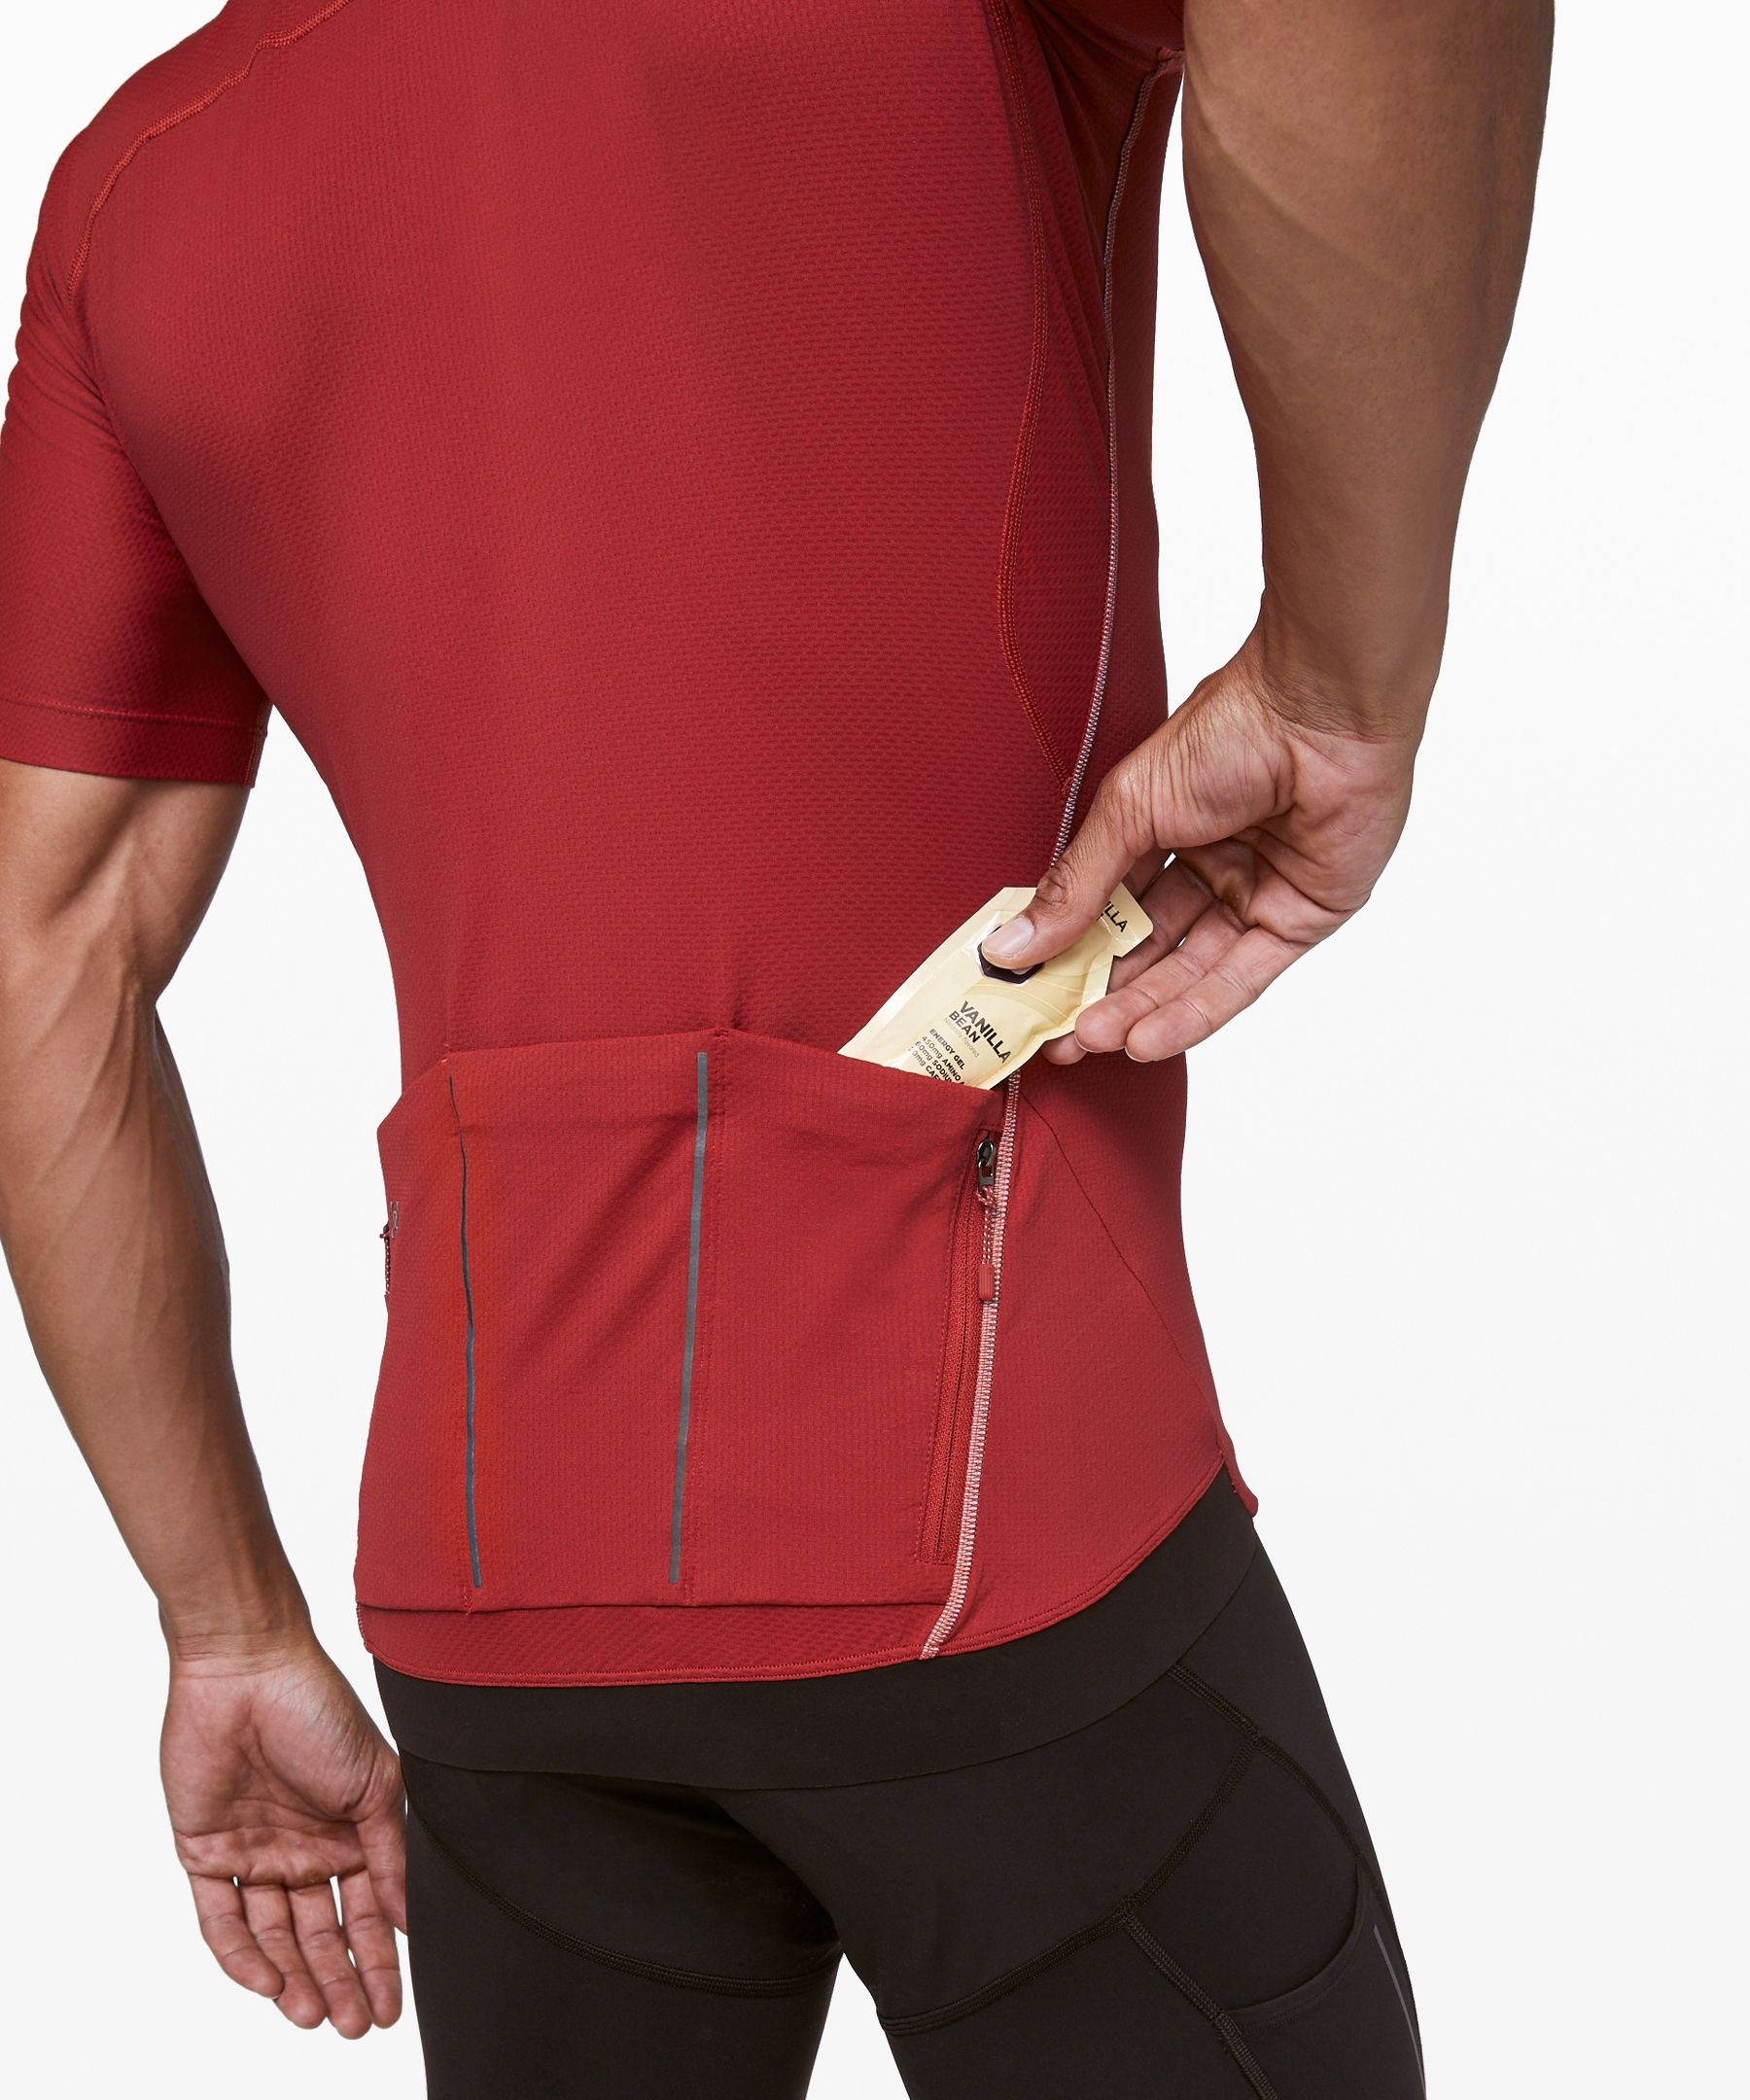 City To Summit Cycling Jersey Men S Short Sleeve Tops Lululemon Athletica Lululemon Men Cycling Tops